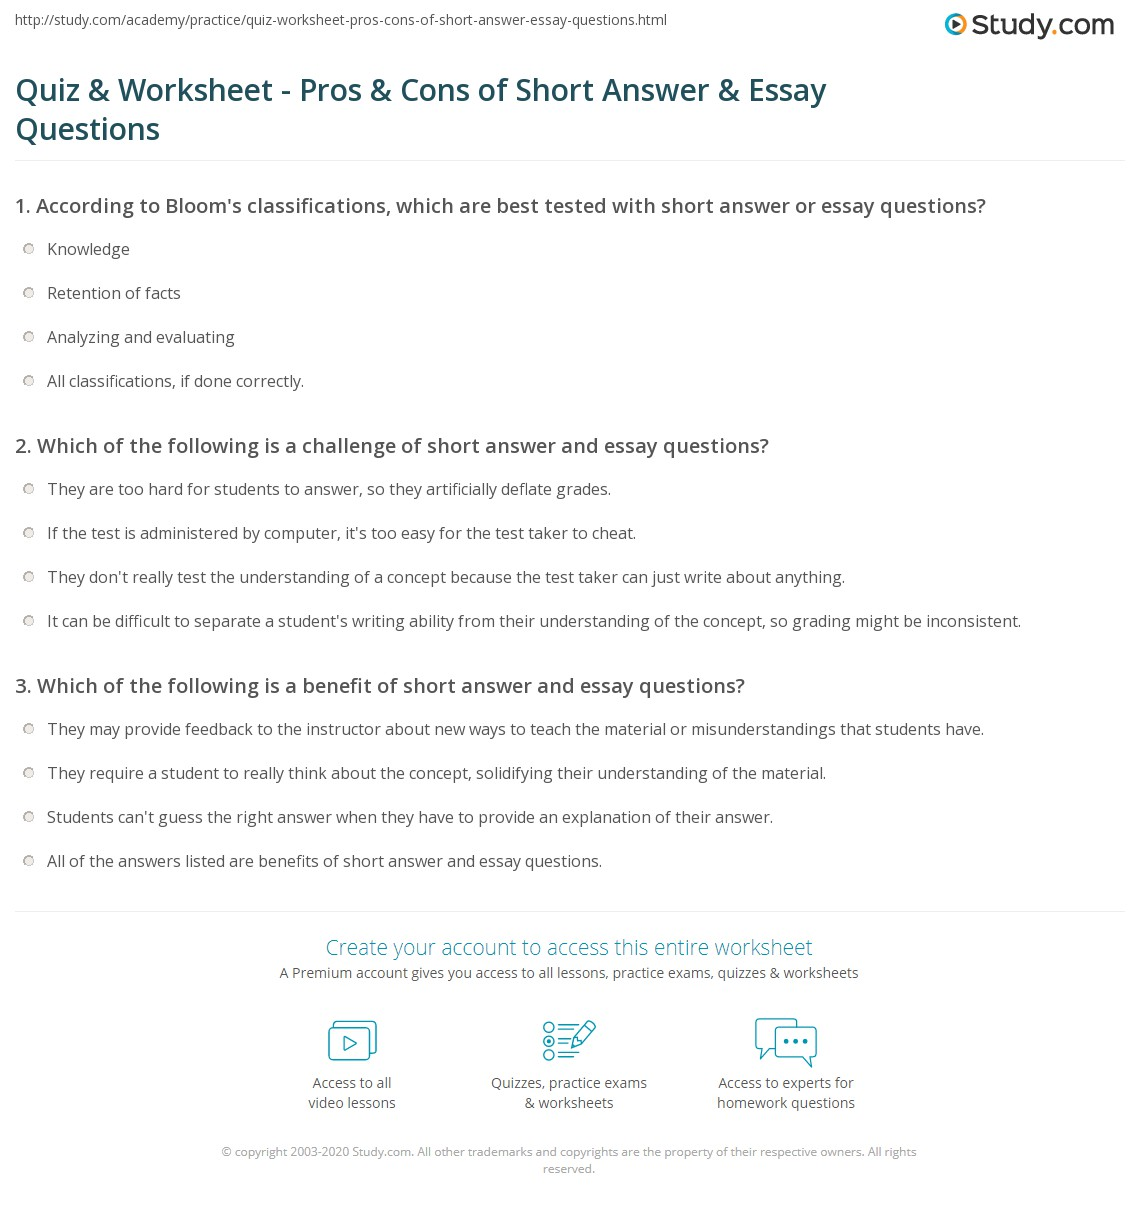 quiz worksheet pros cons of short answer essay questions print strengths limitations of short answer essay questions worksheet